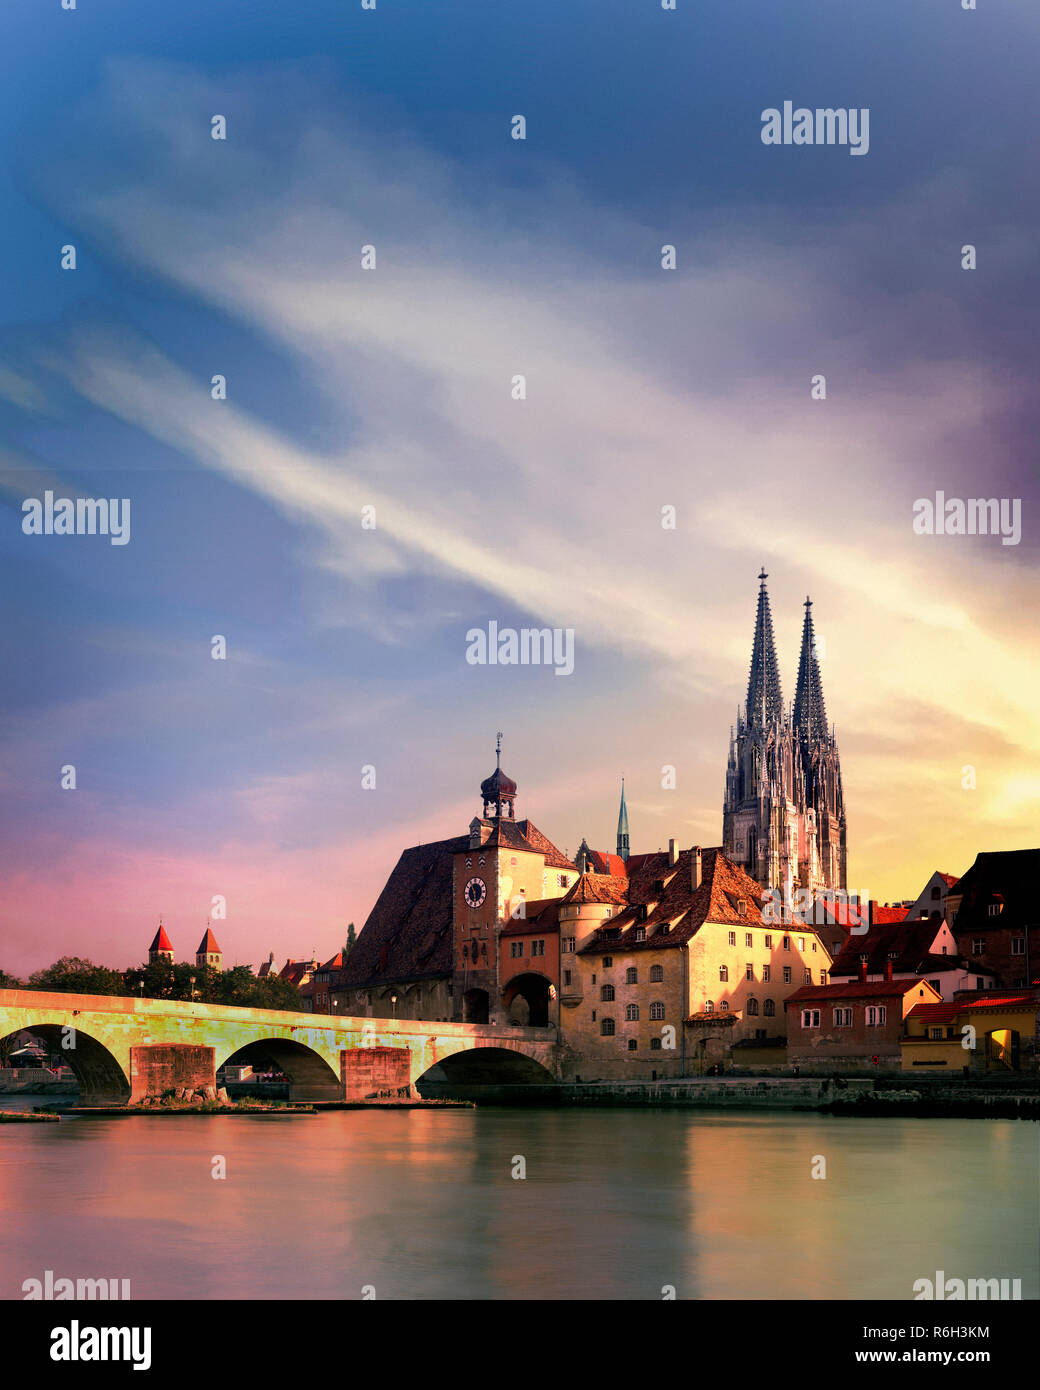 DE - BAVARIA: St. Peter's Cathedral and Steinerne Bruecke over River Danube at Regensburg - Stock Image